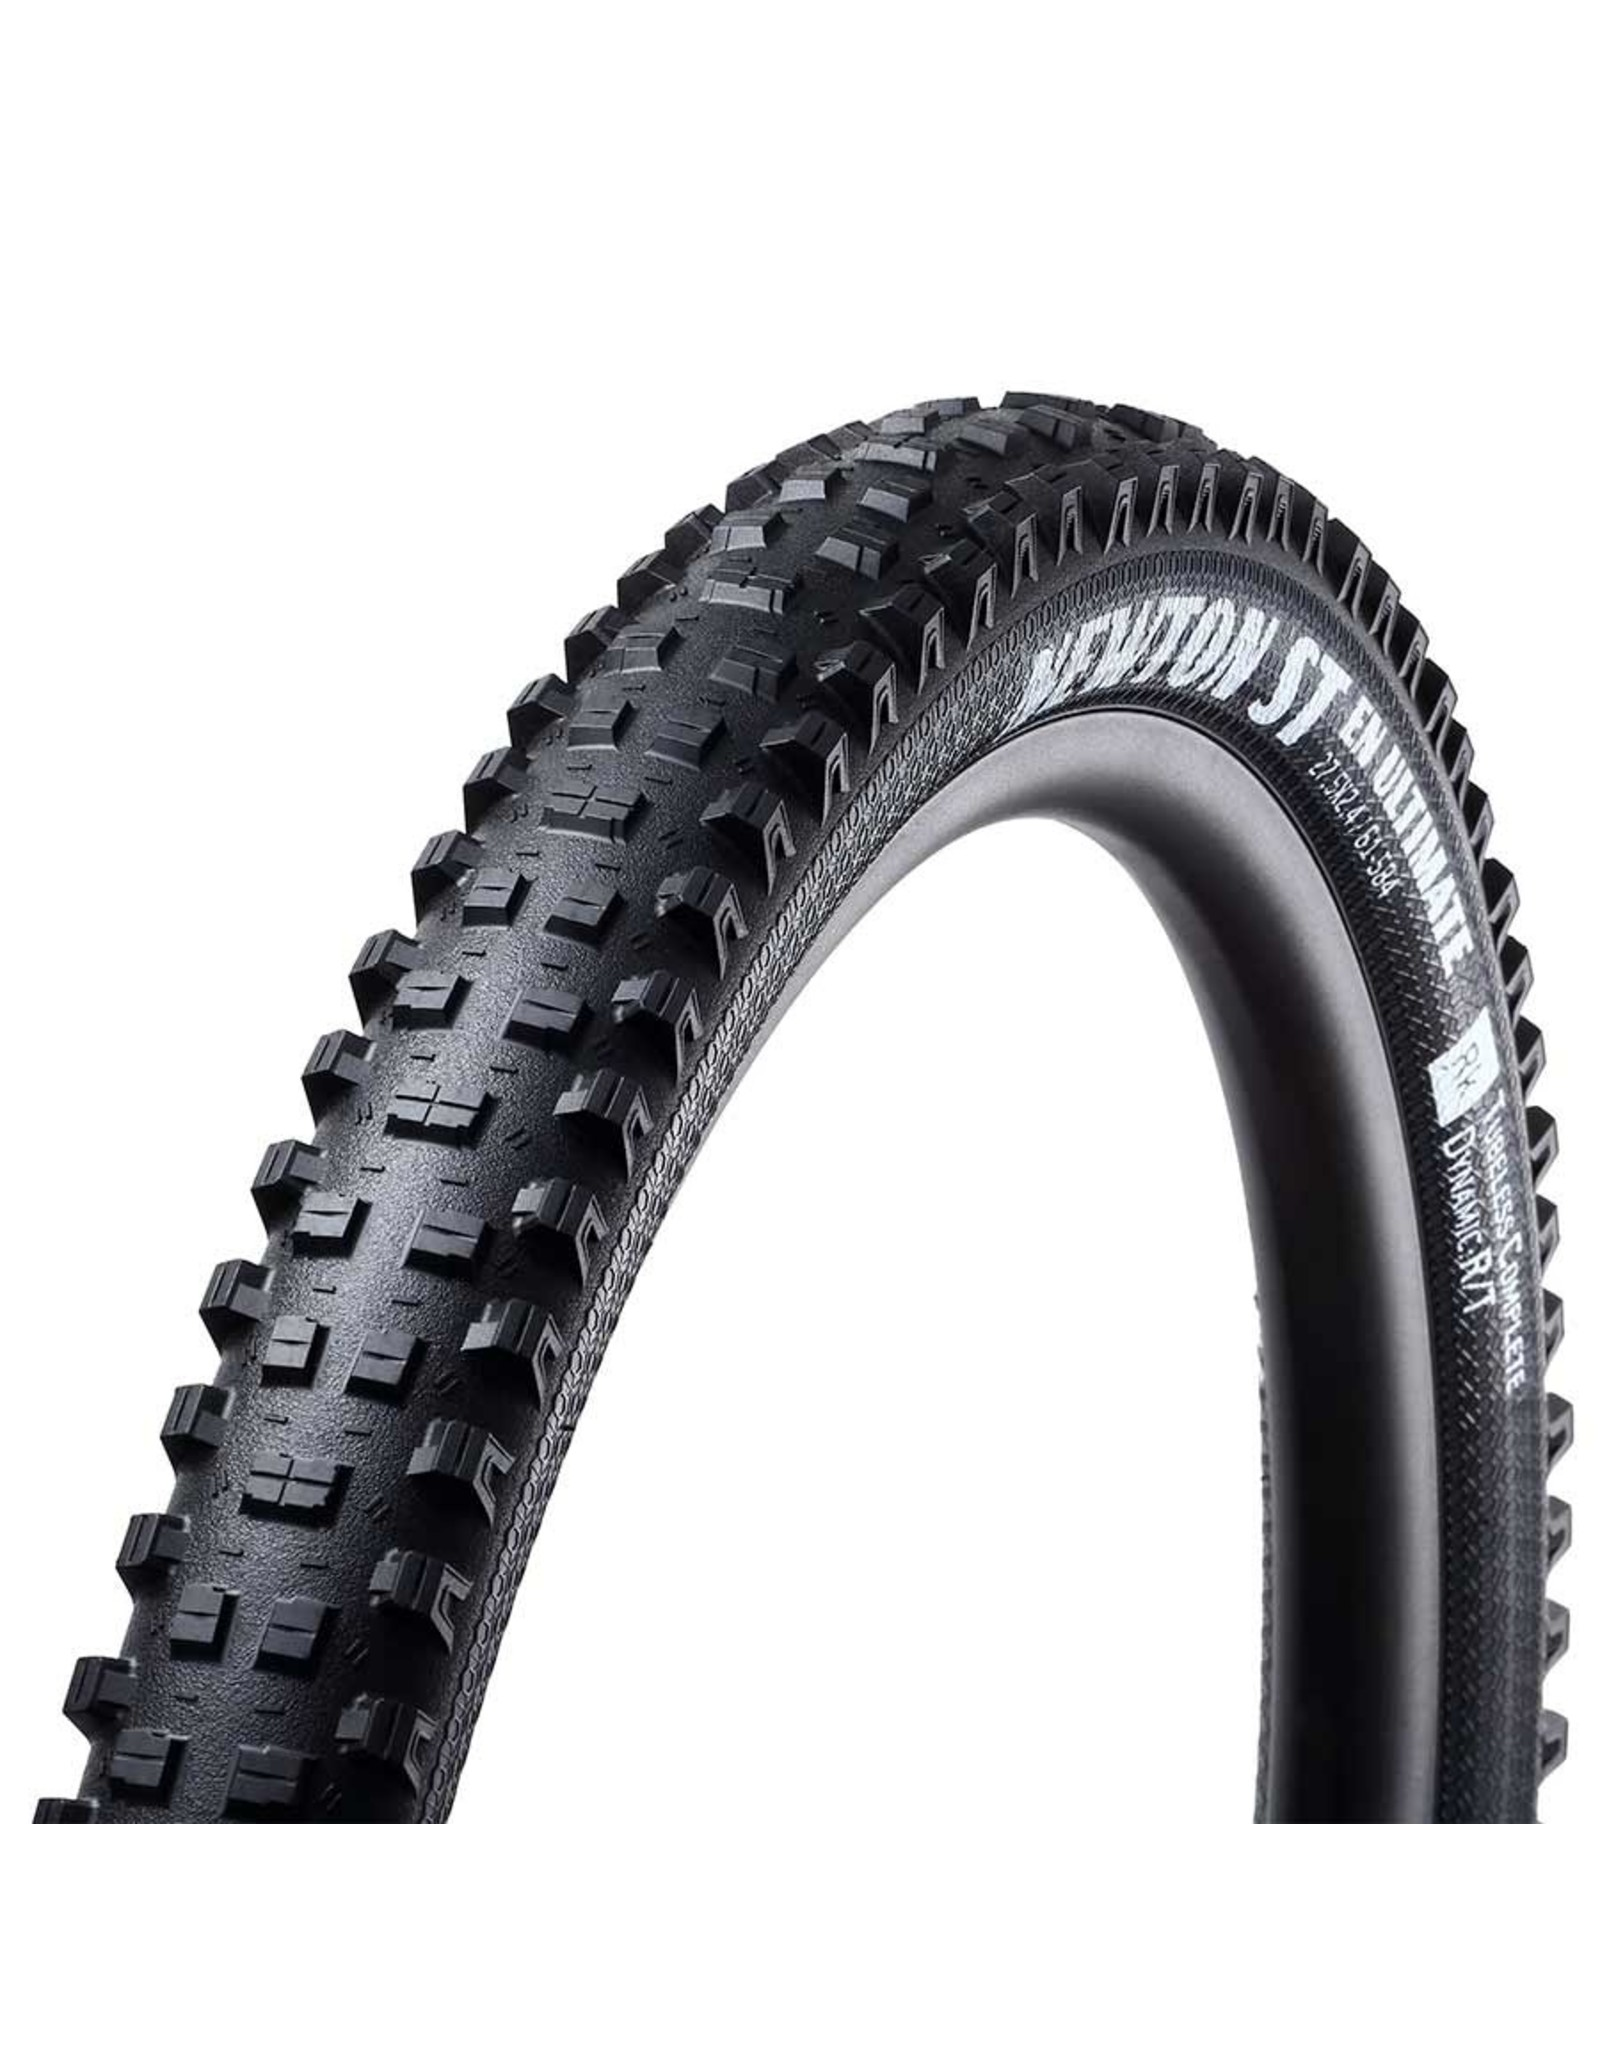 Goodyear Goodyear, Newton-ST, Tire, 27.5''x2.60, Folding, Tubeless Ready, Dynamic:RS/T, DH Ultimate, 240TPI, Black